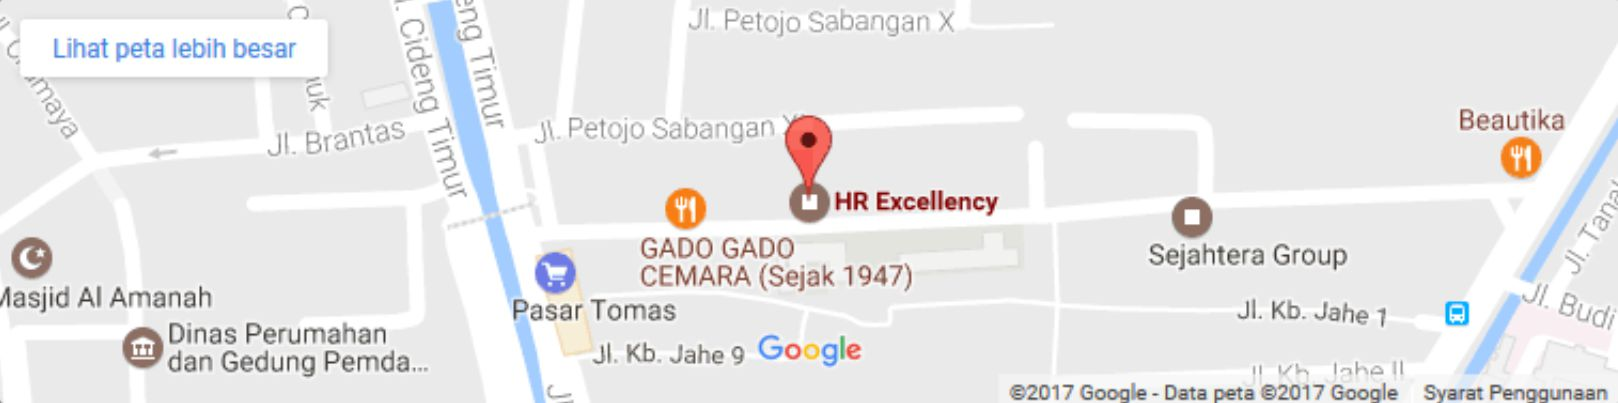 Location HR Excellency